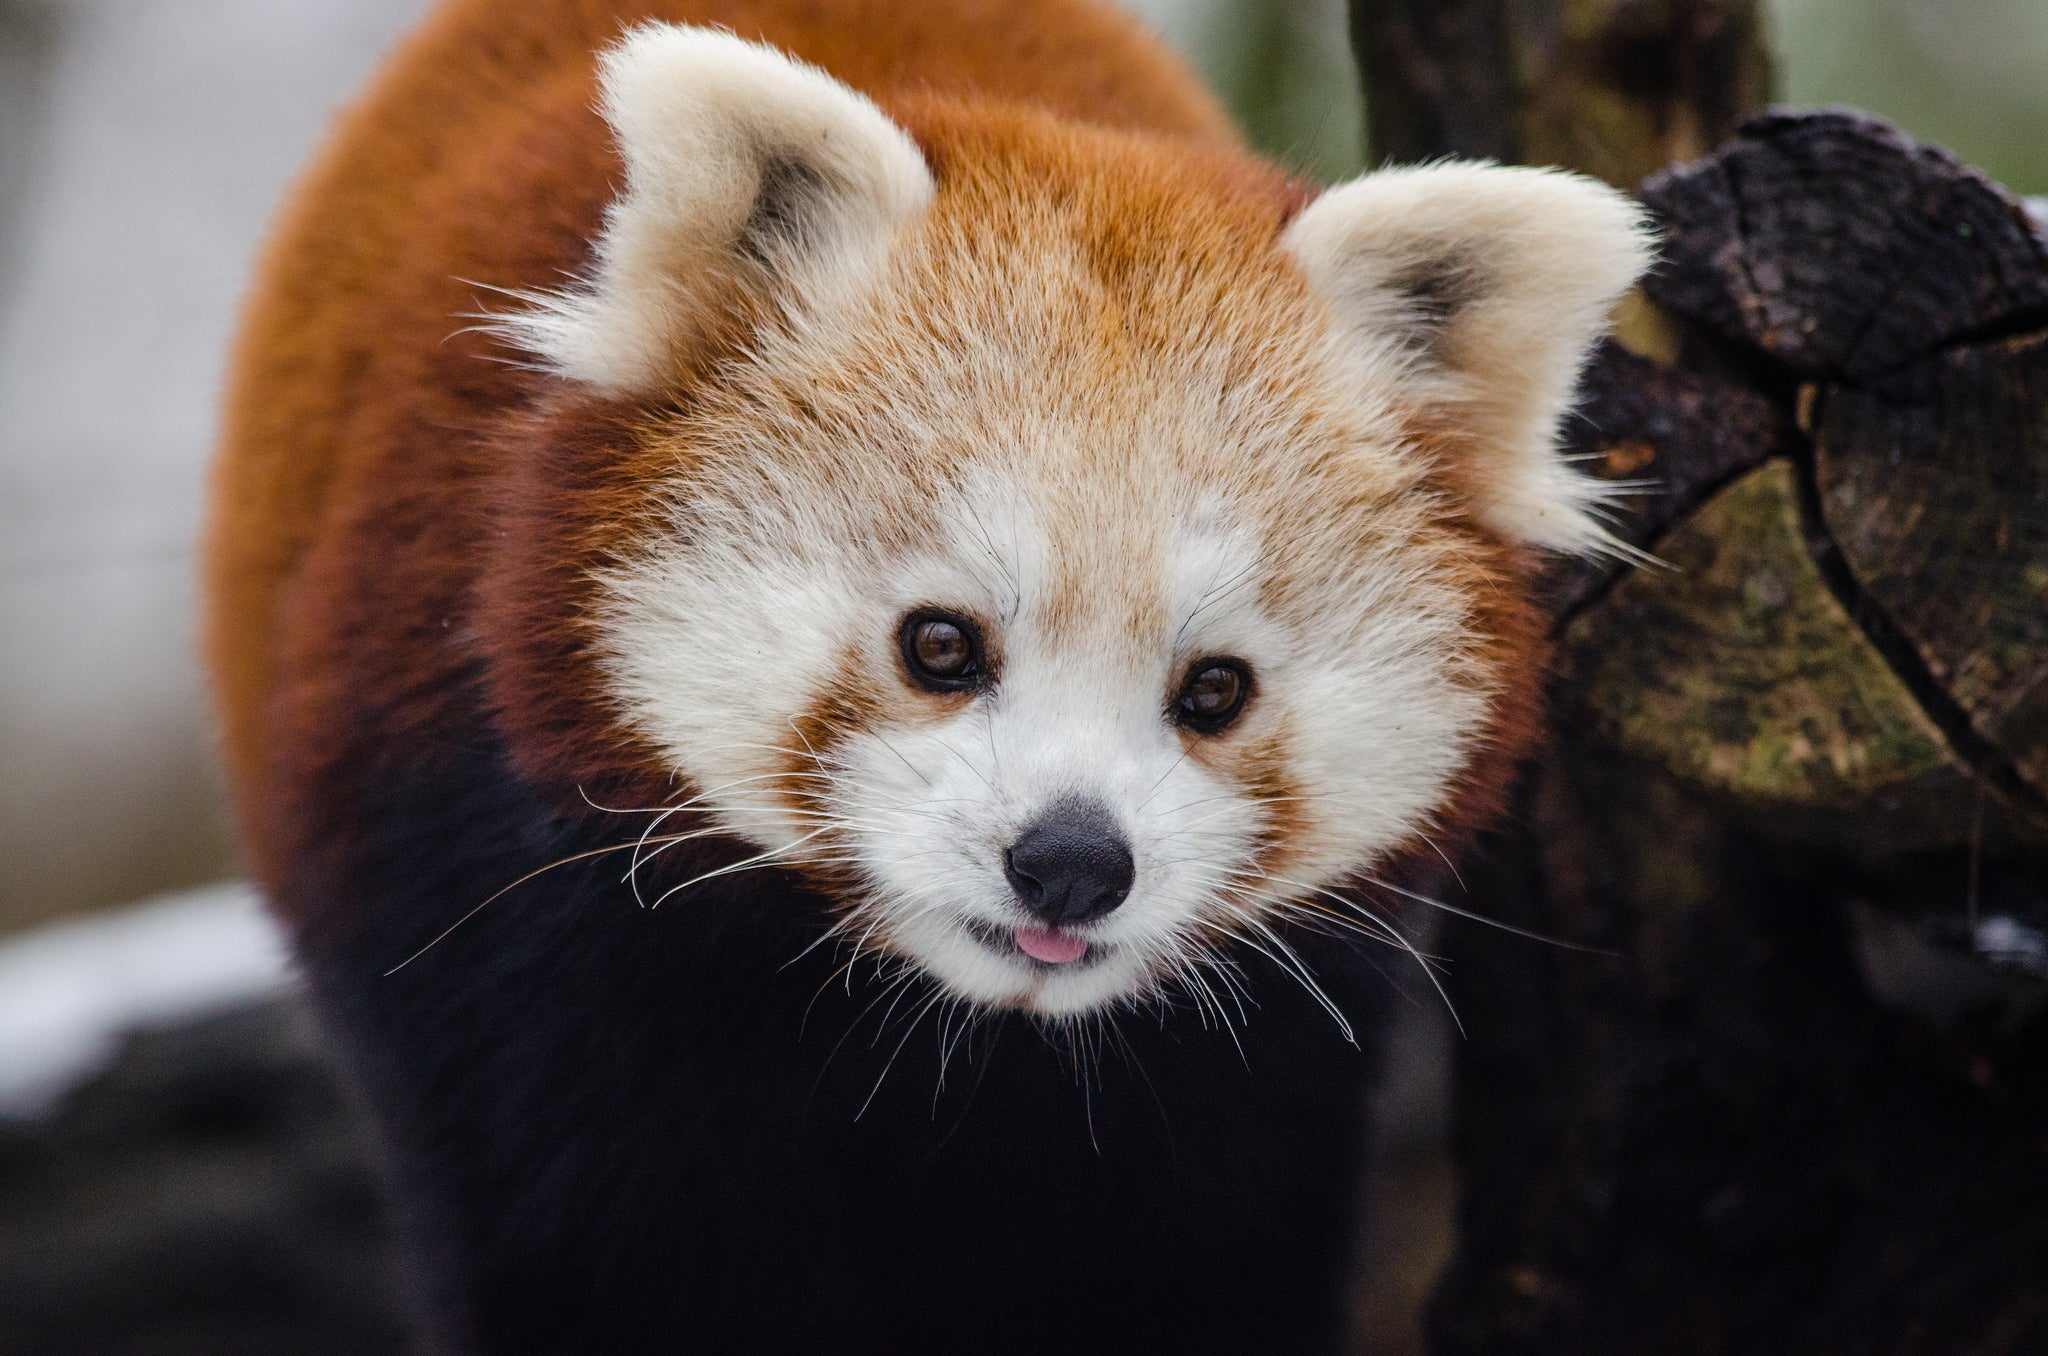 7 Things You Didn't Know About Red Pandas